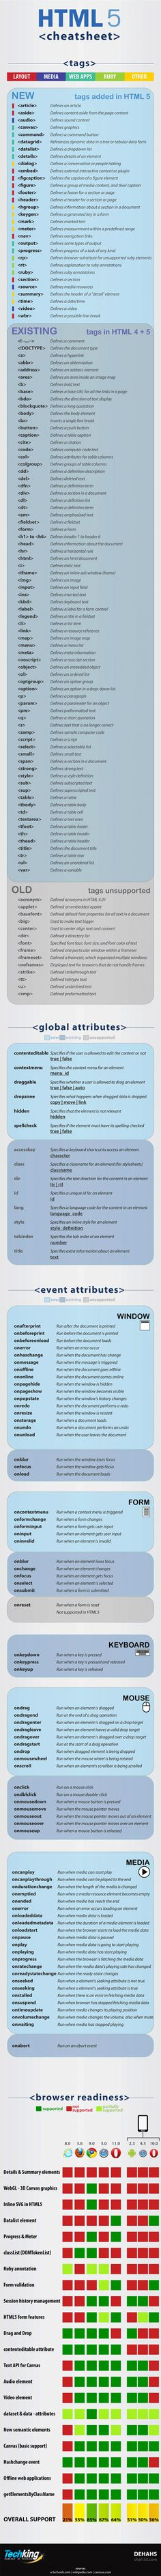 HTML 5 Cheat Sheet.  Ignore the browser compatibility chart and just hit up caniuse.com instead.